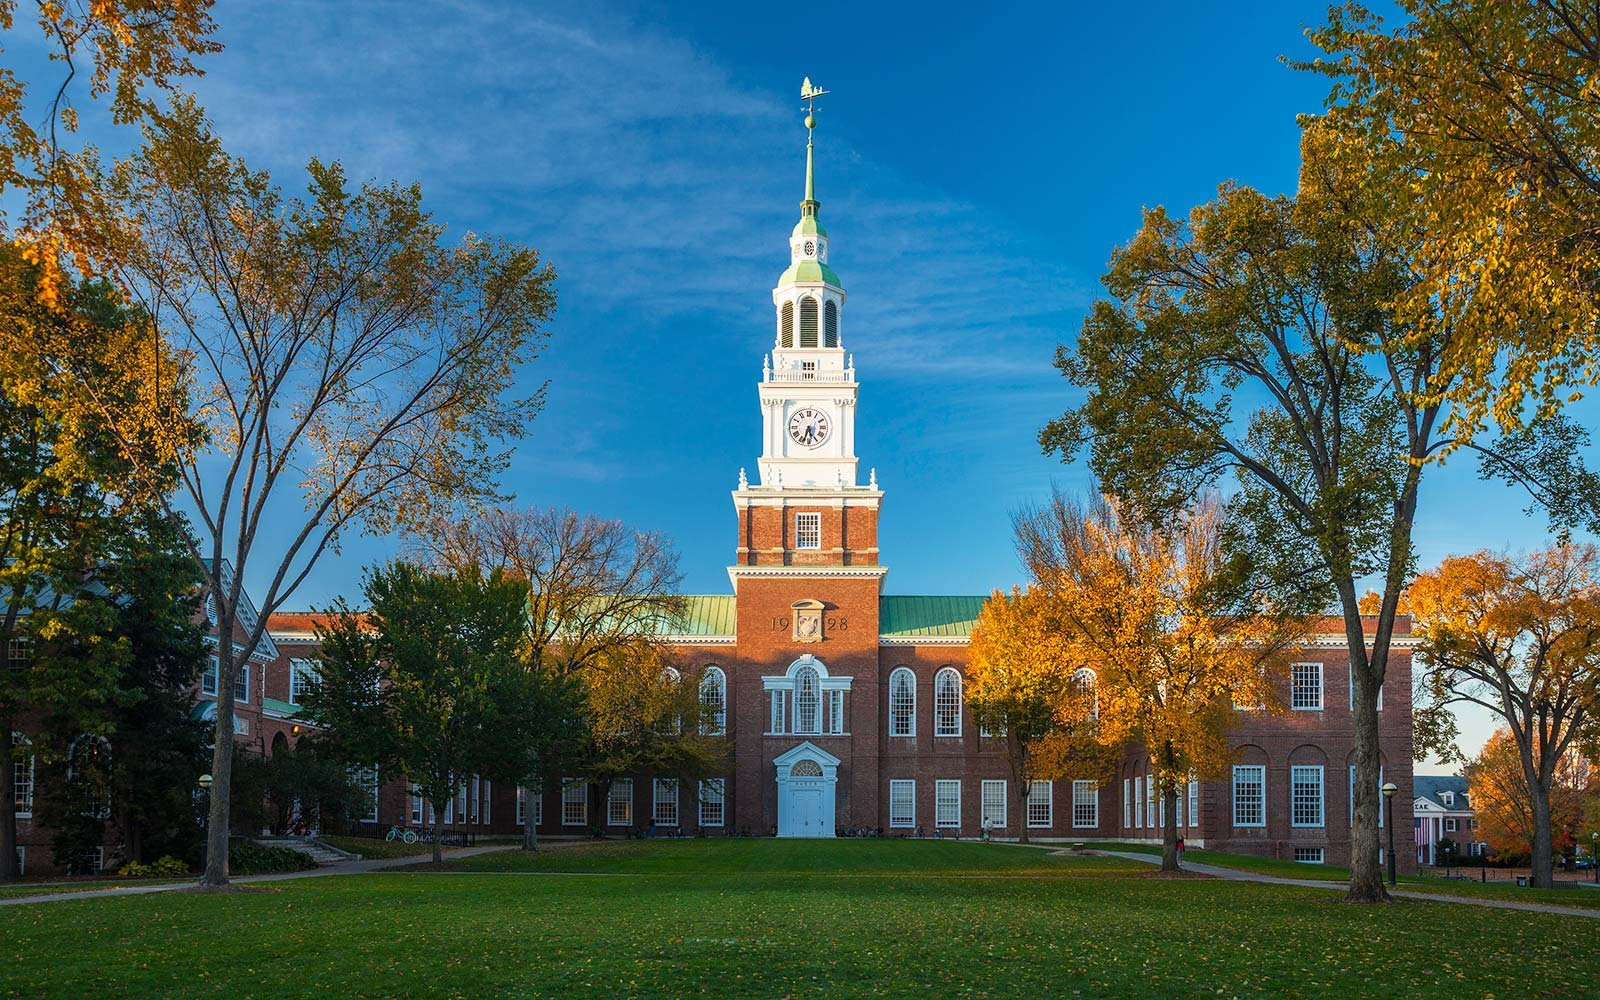 Baker-Berry Library at Dartmouth College